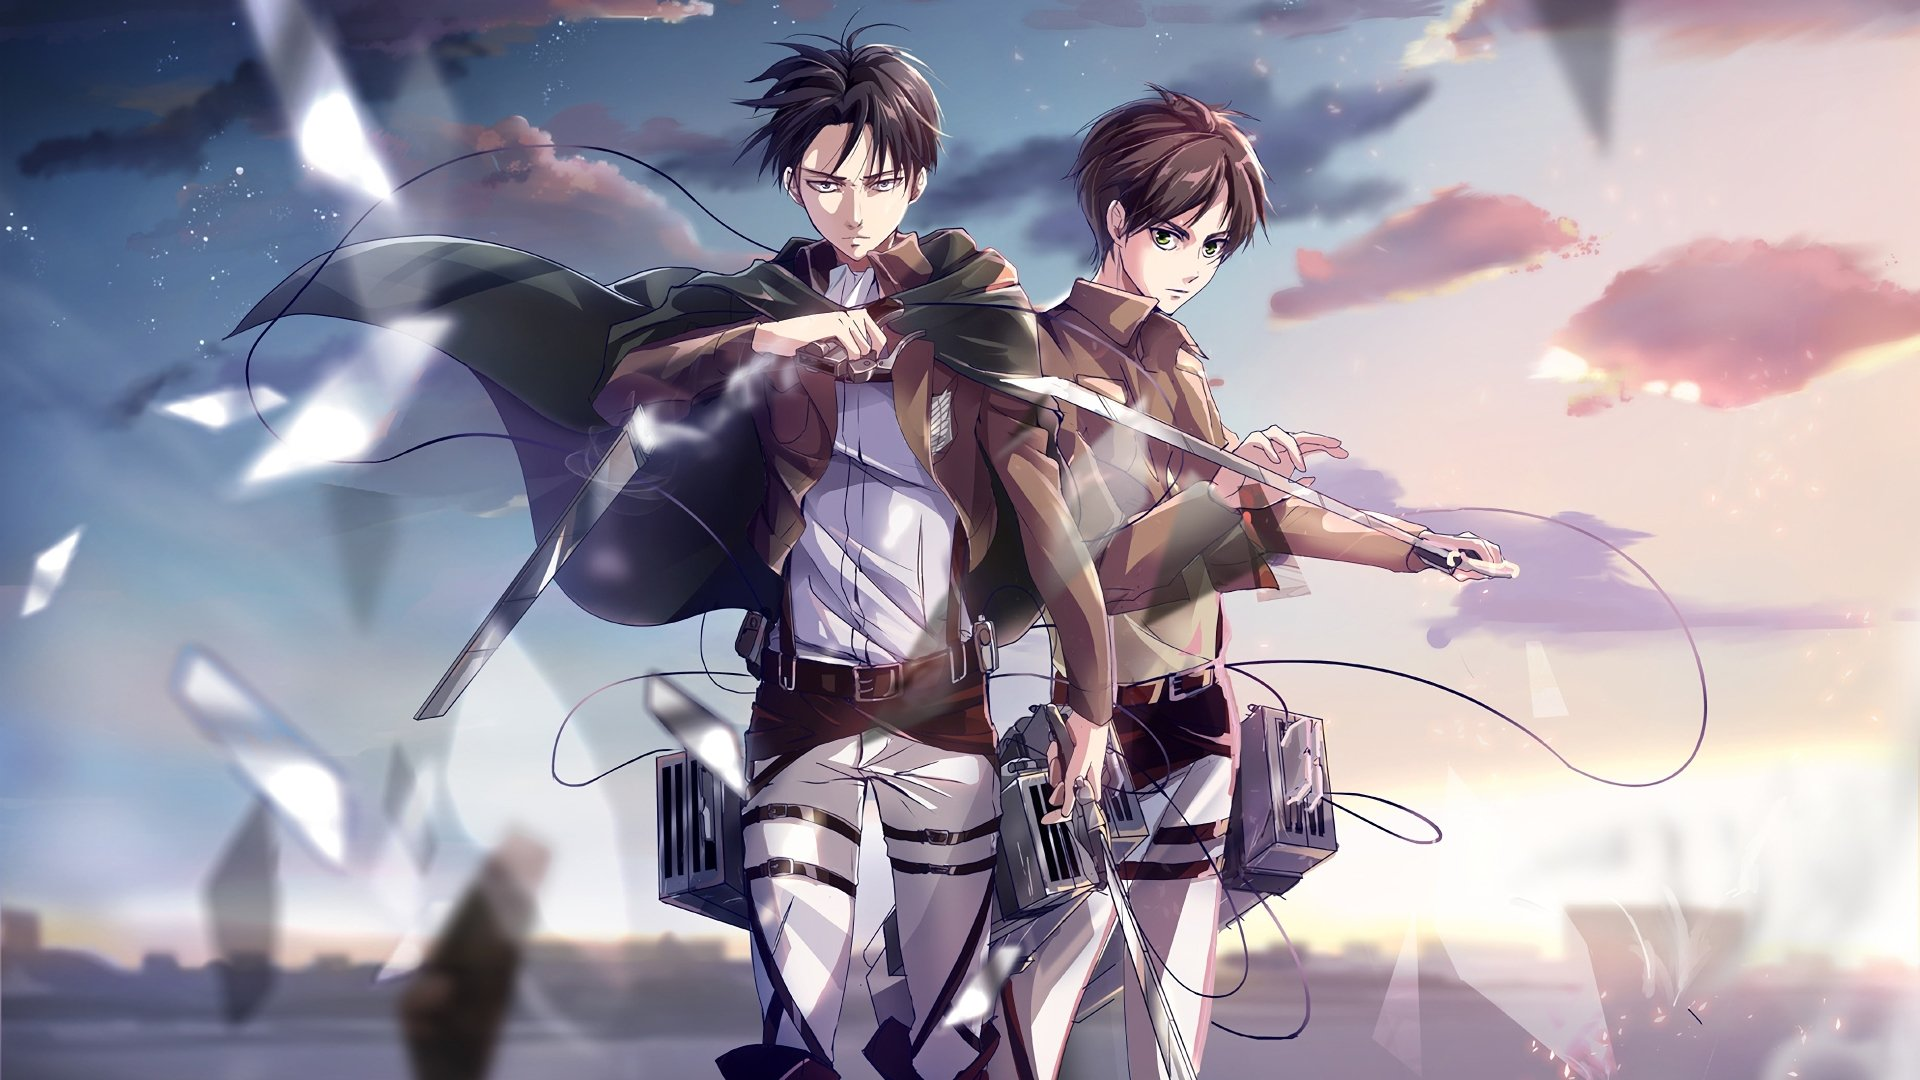 Anime Attack On Titan Eren Yeager Levi Ackerman Wallpaper Attack On Titan Art Attack On Titan Season Attack On Titan Anime